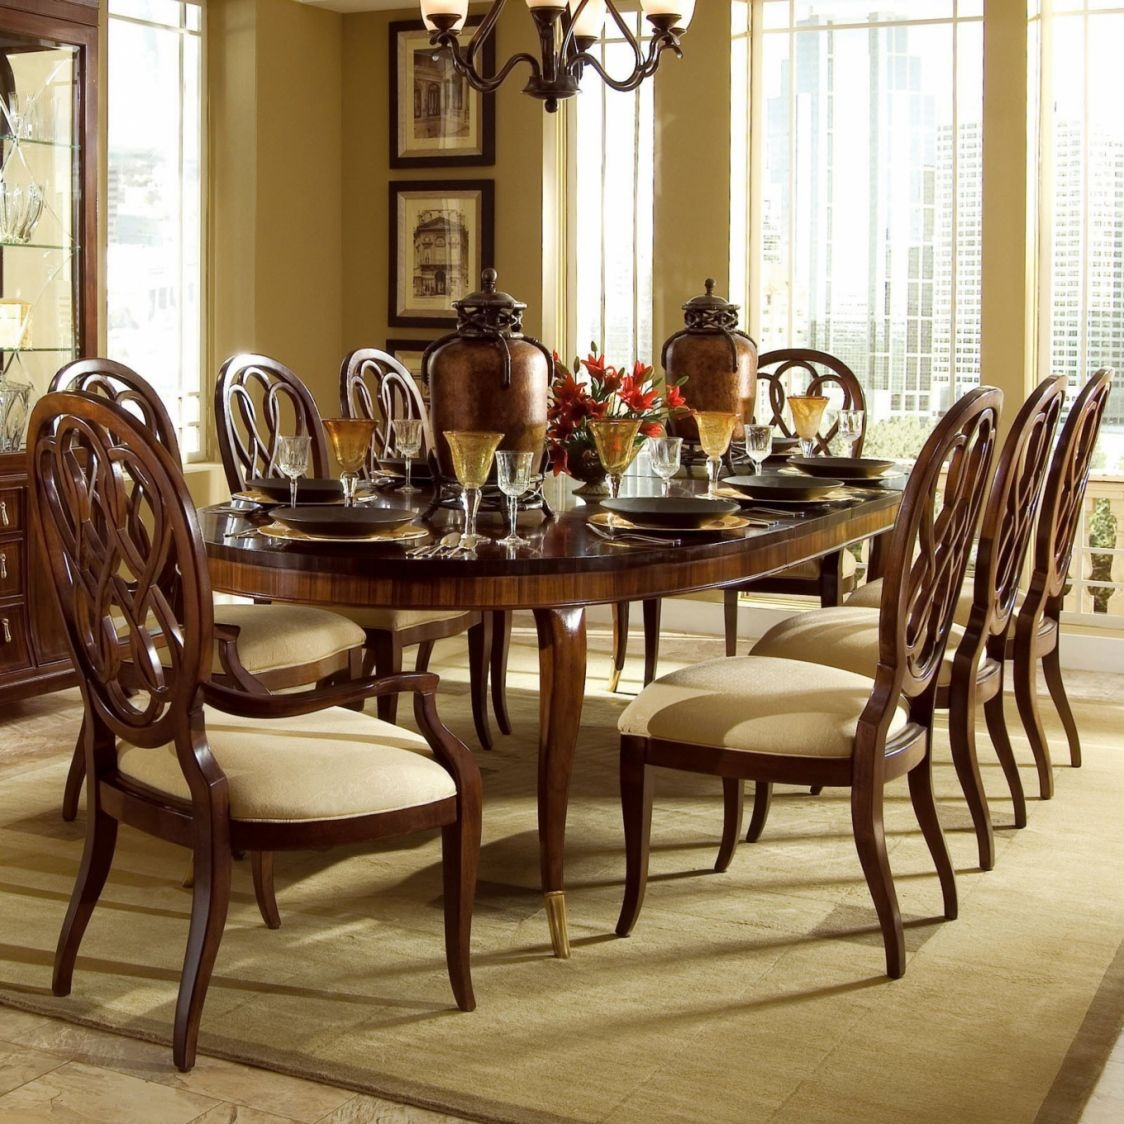 Havertys Furniture Dining Room Set Cool Modern Furniture Check